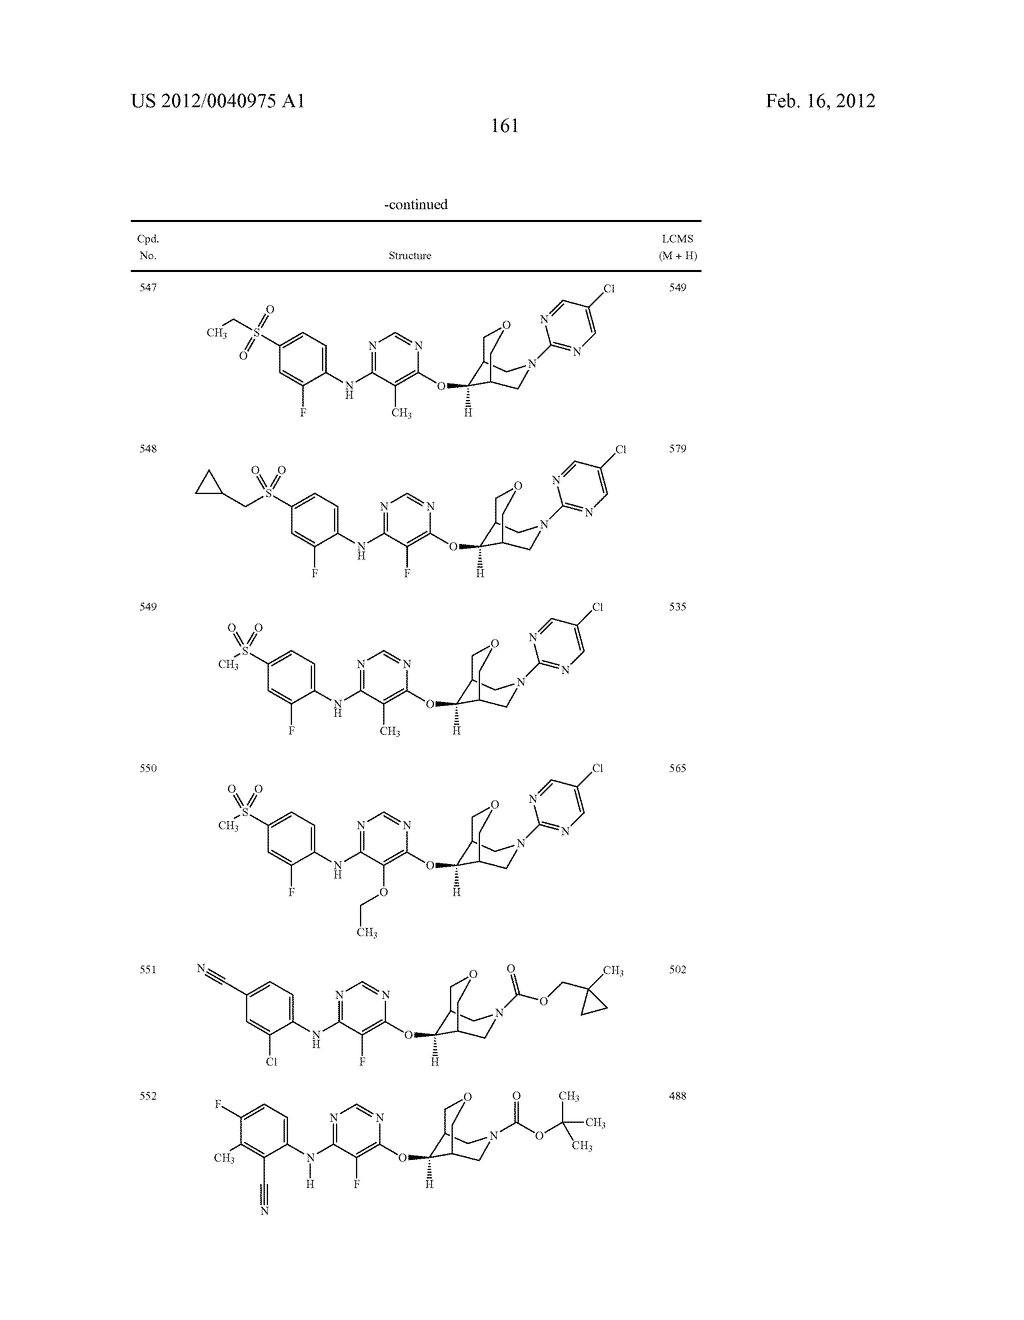 BRIDGED BICYCLIC HETEROCYCLE DERIVATIVES AND METHODS OF USE THEREOF - diagram, schematic, and image 162